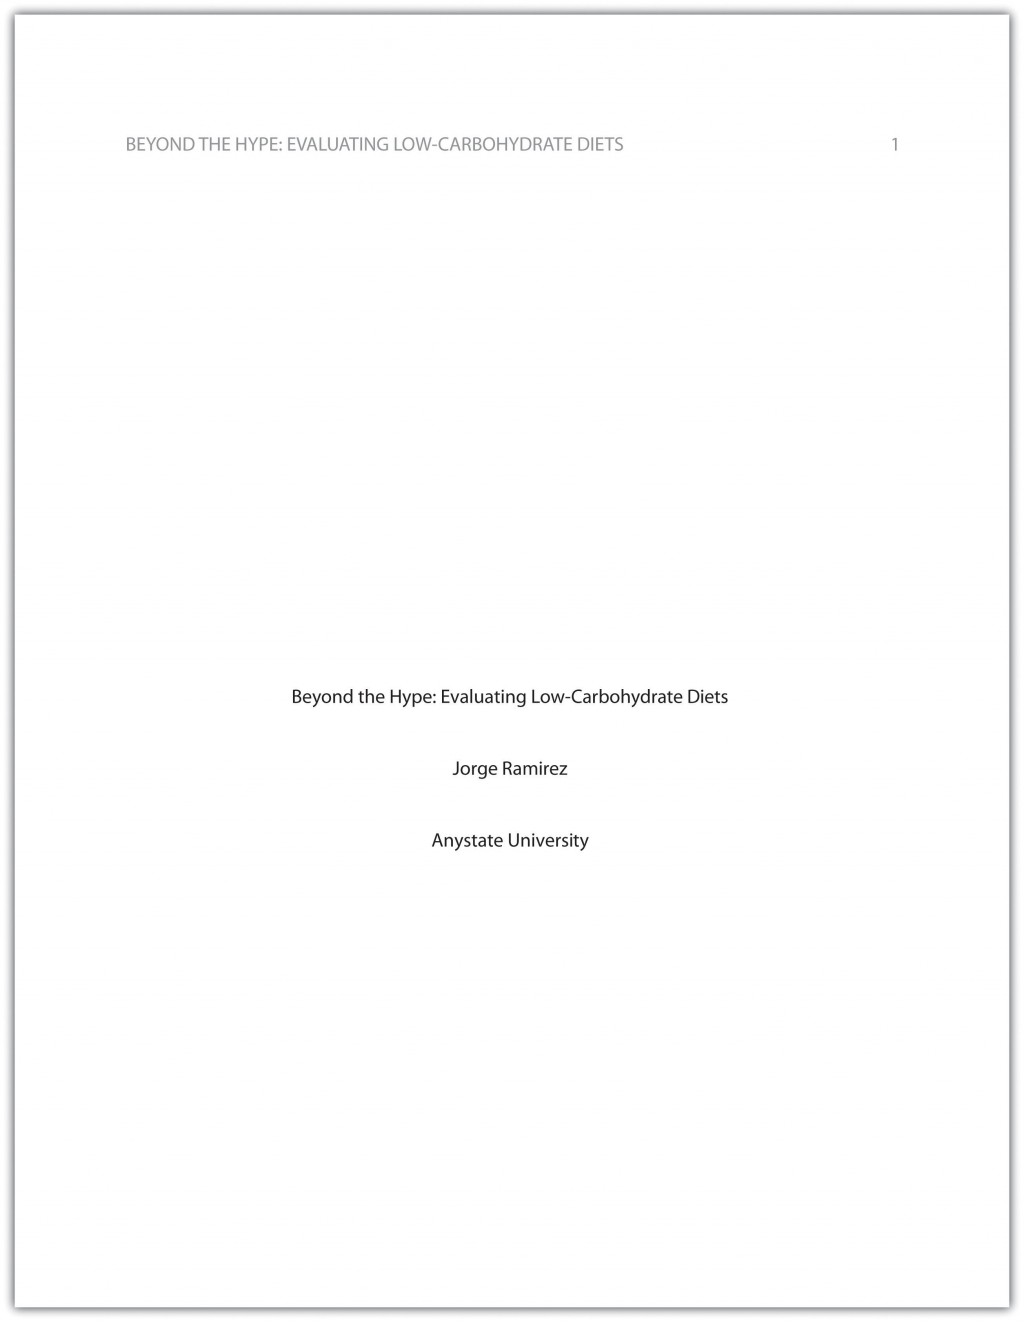 004 Apa Essay Cover Page Example Incredible Correct Title Front Research Large